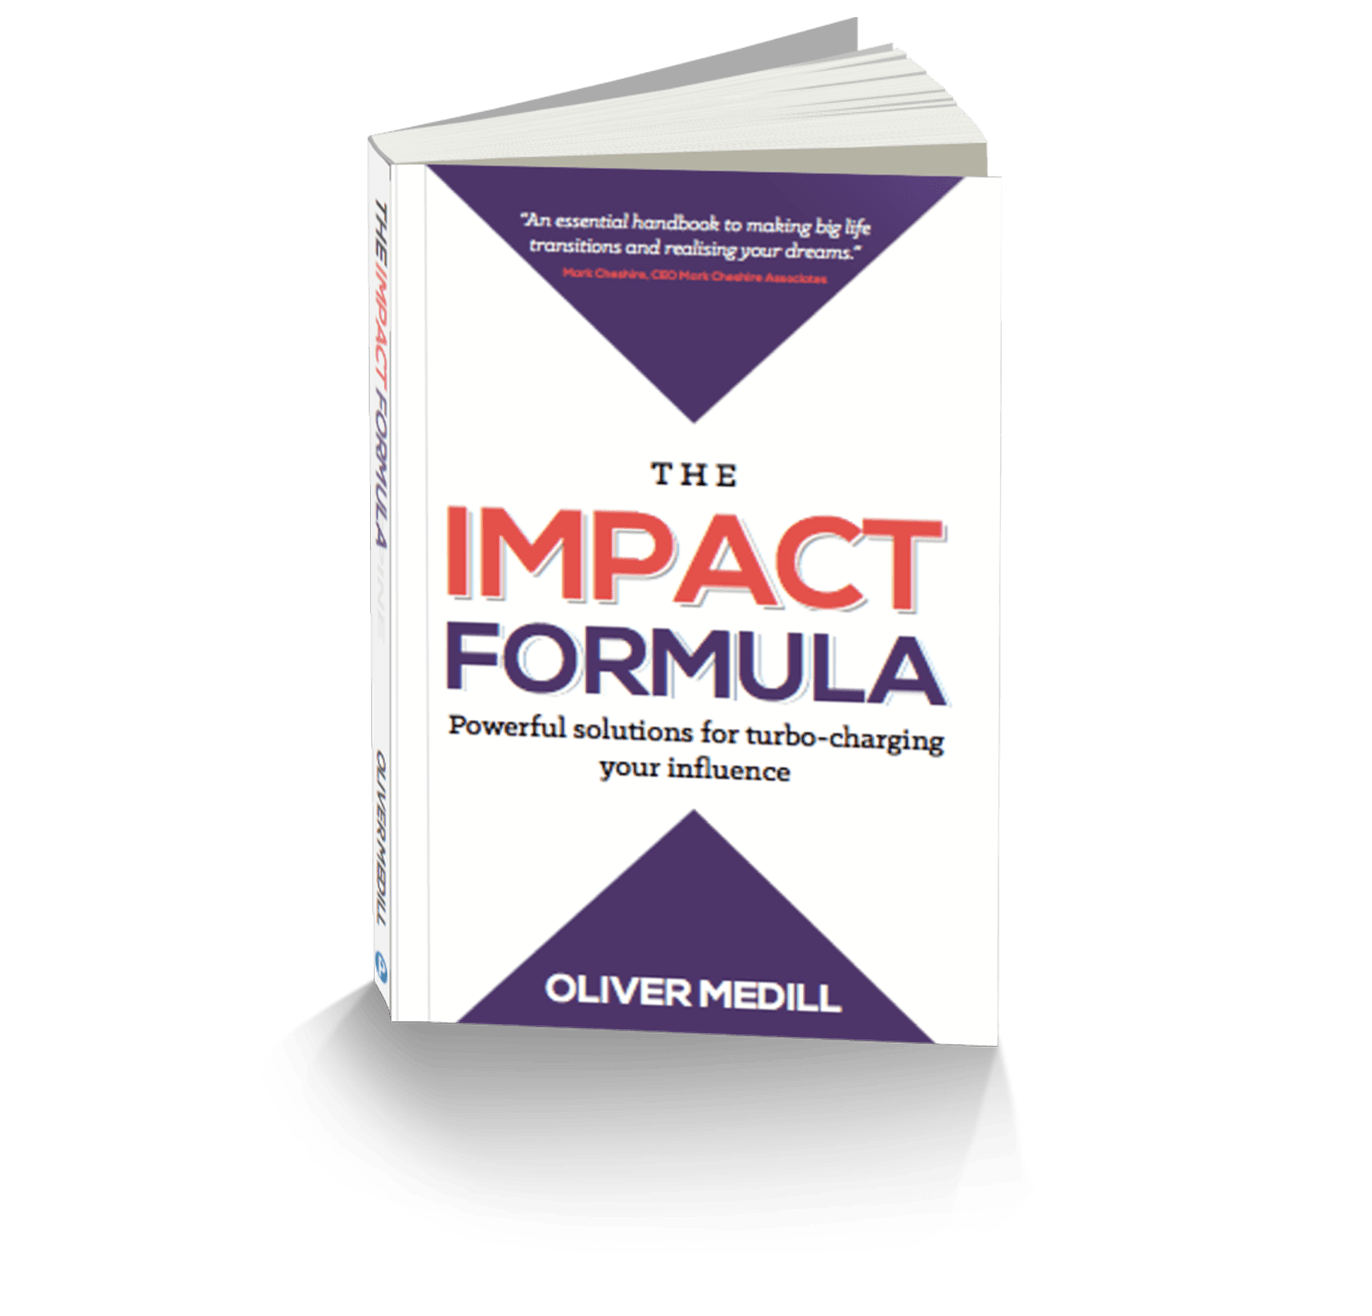 The Impact Formula Book by Oliver Medill Public Speaking Coach for All About Impact